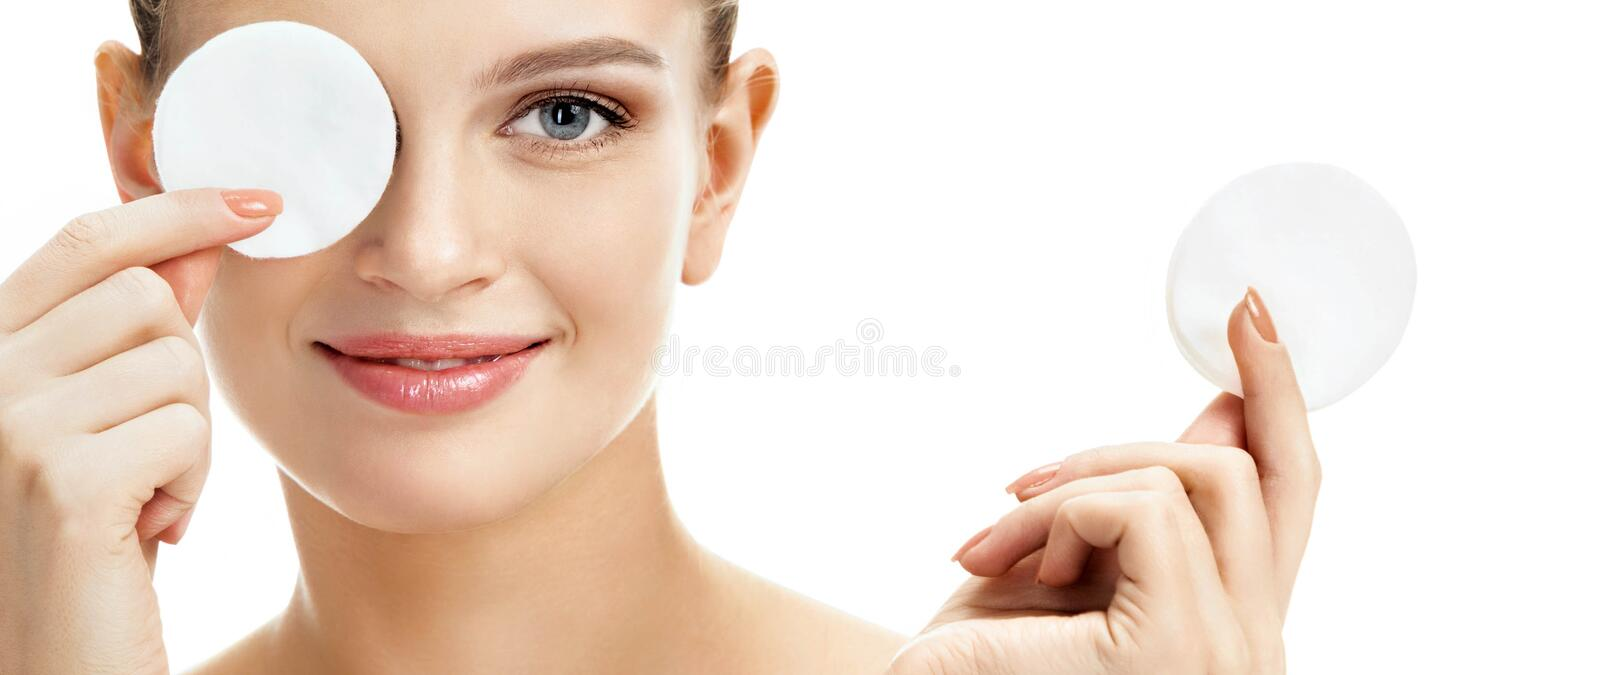 Smiling girl holding cotton pads up to her eyes. royalty free stock images